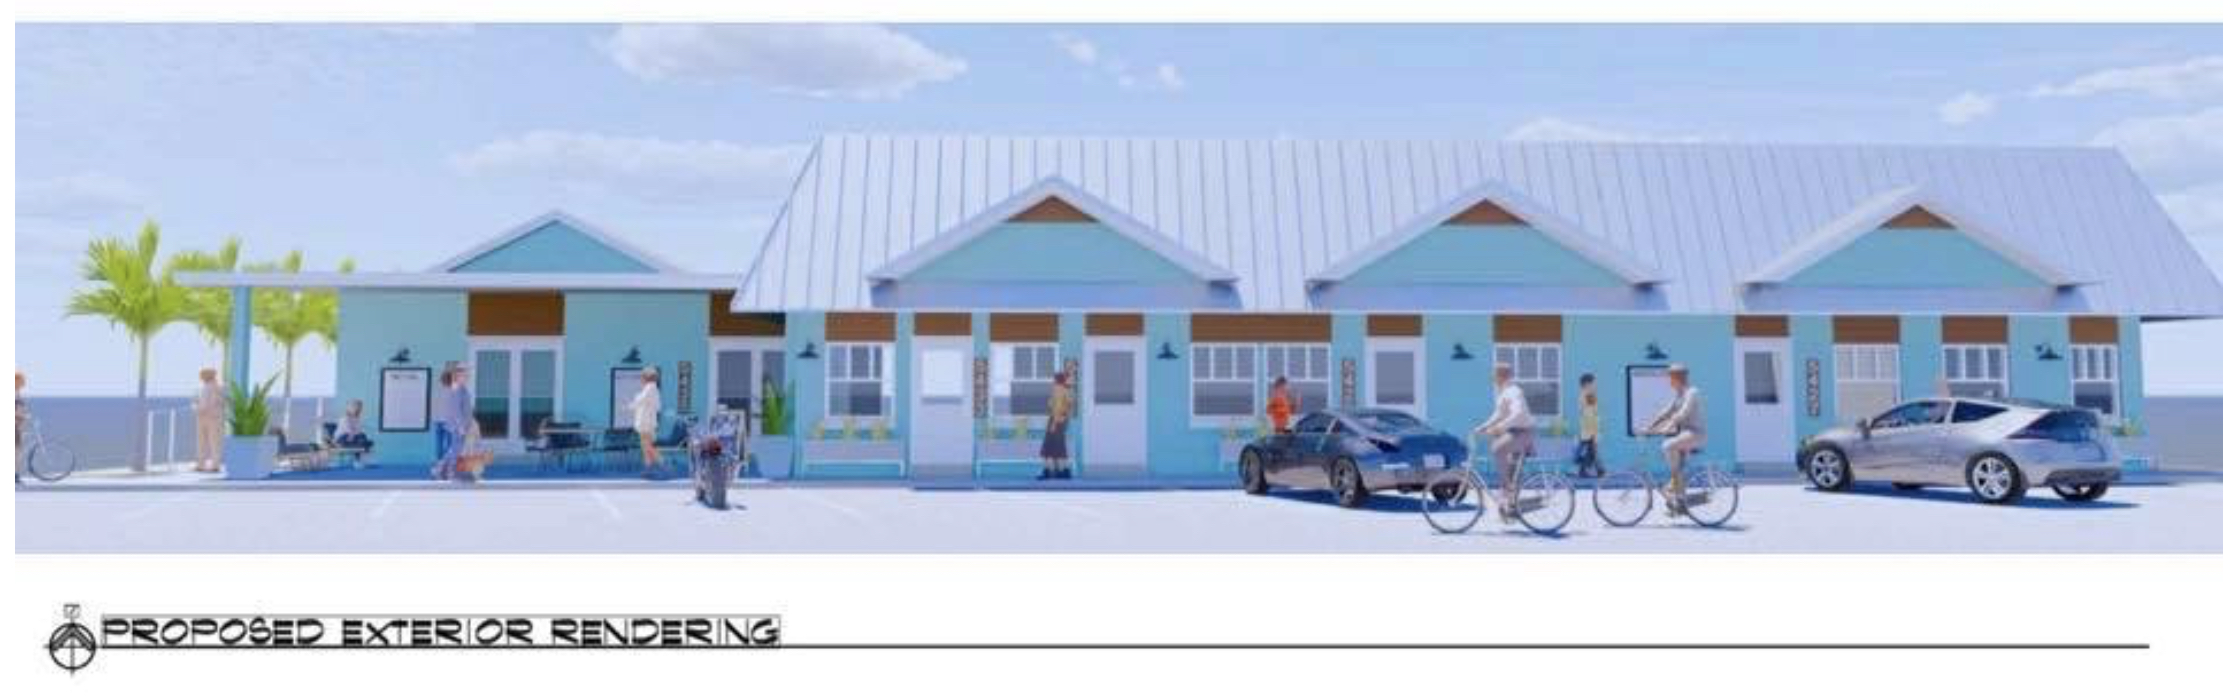 An artist rendering of a development of shops painted blue with card and customers.